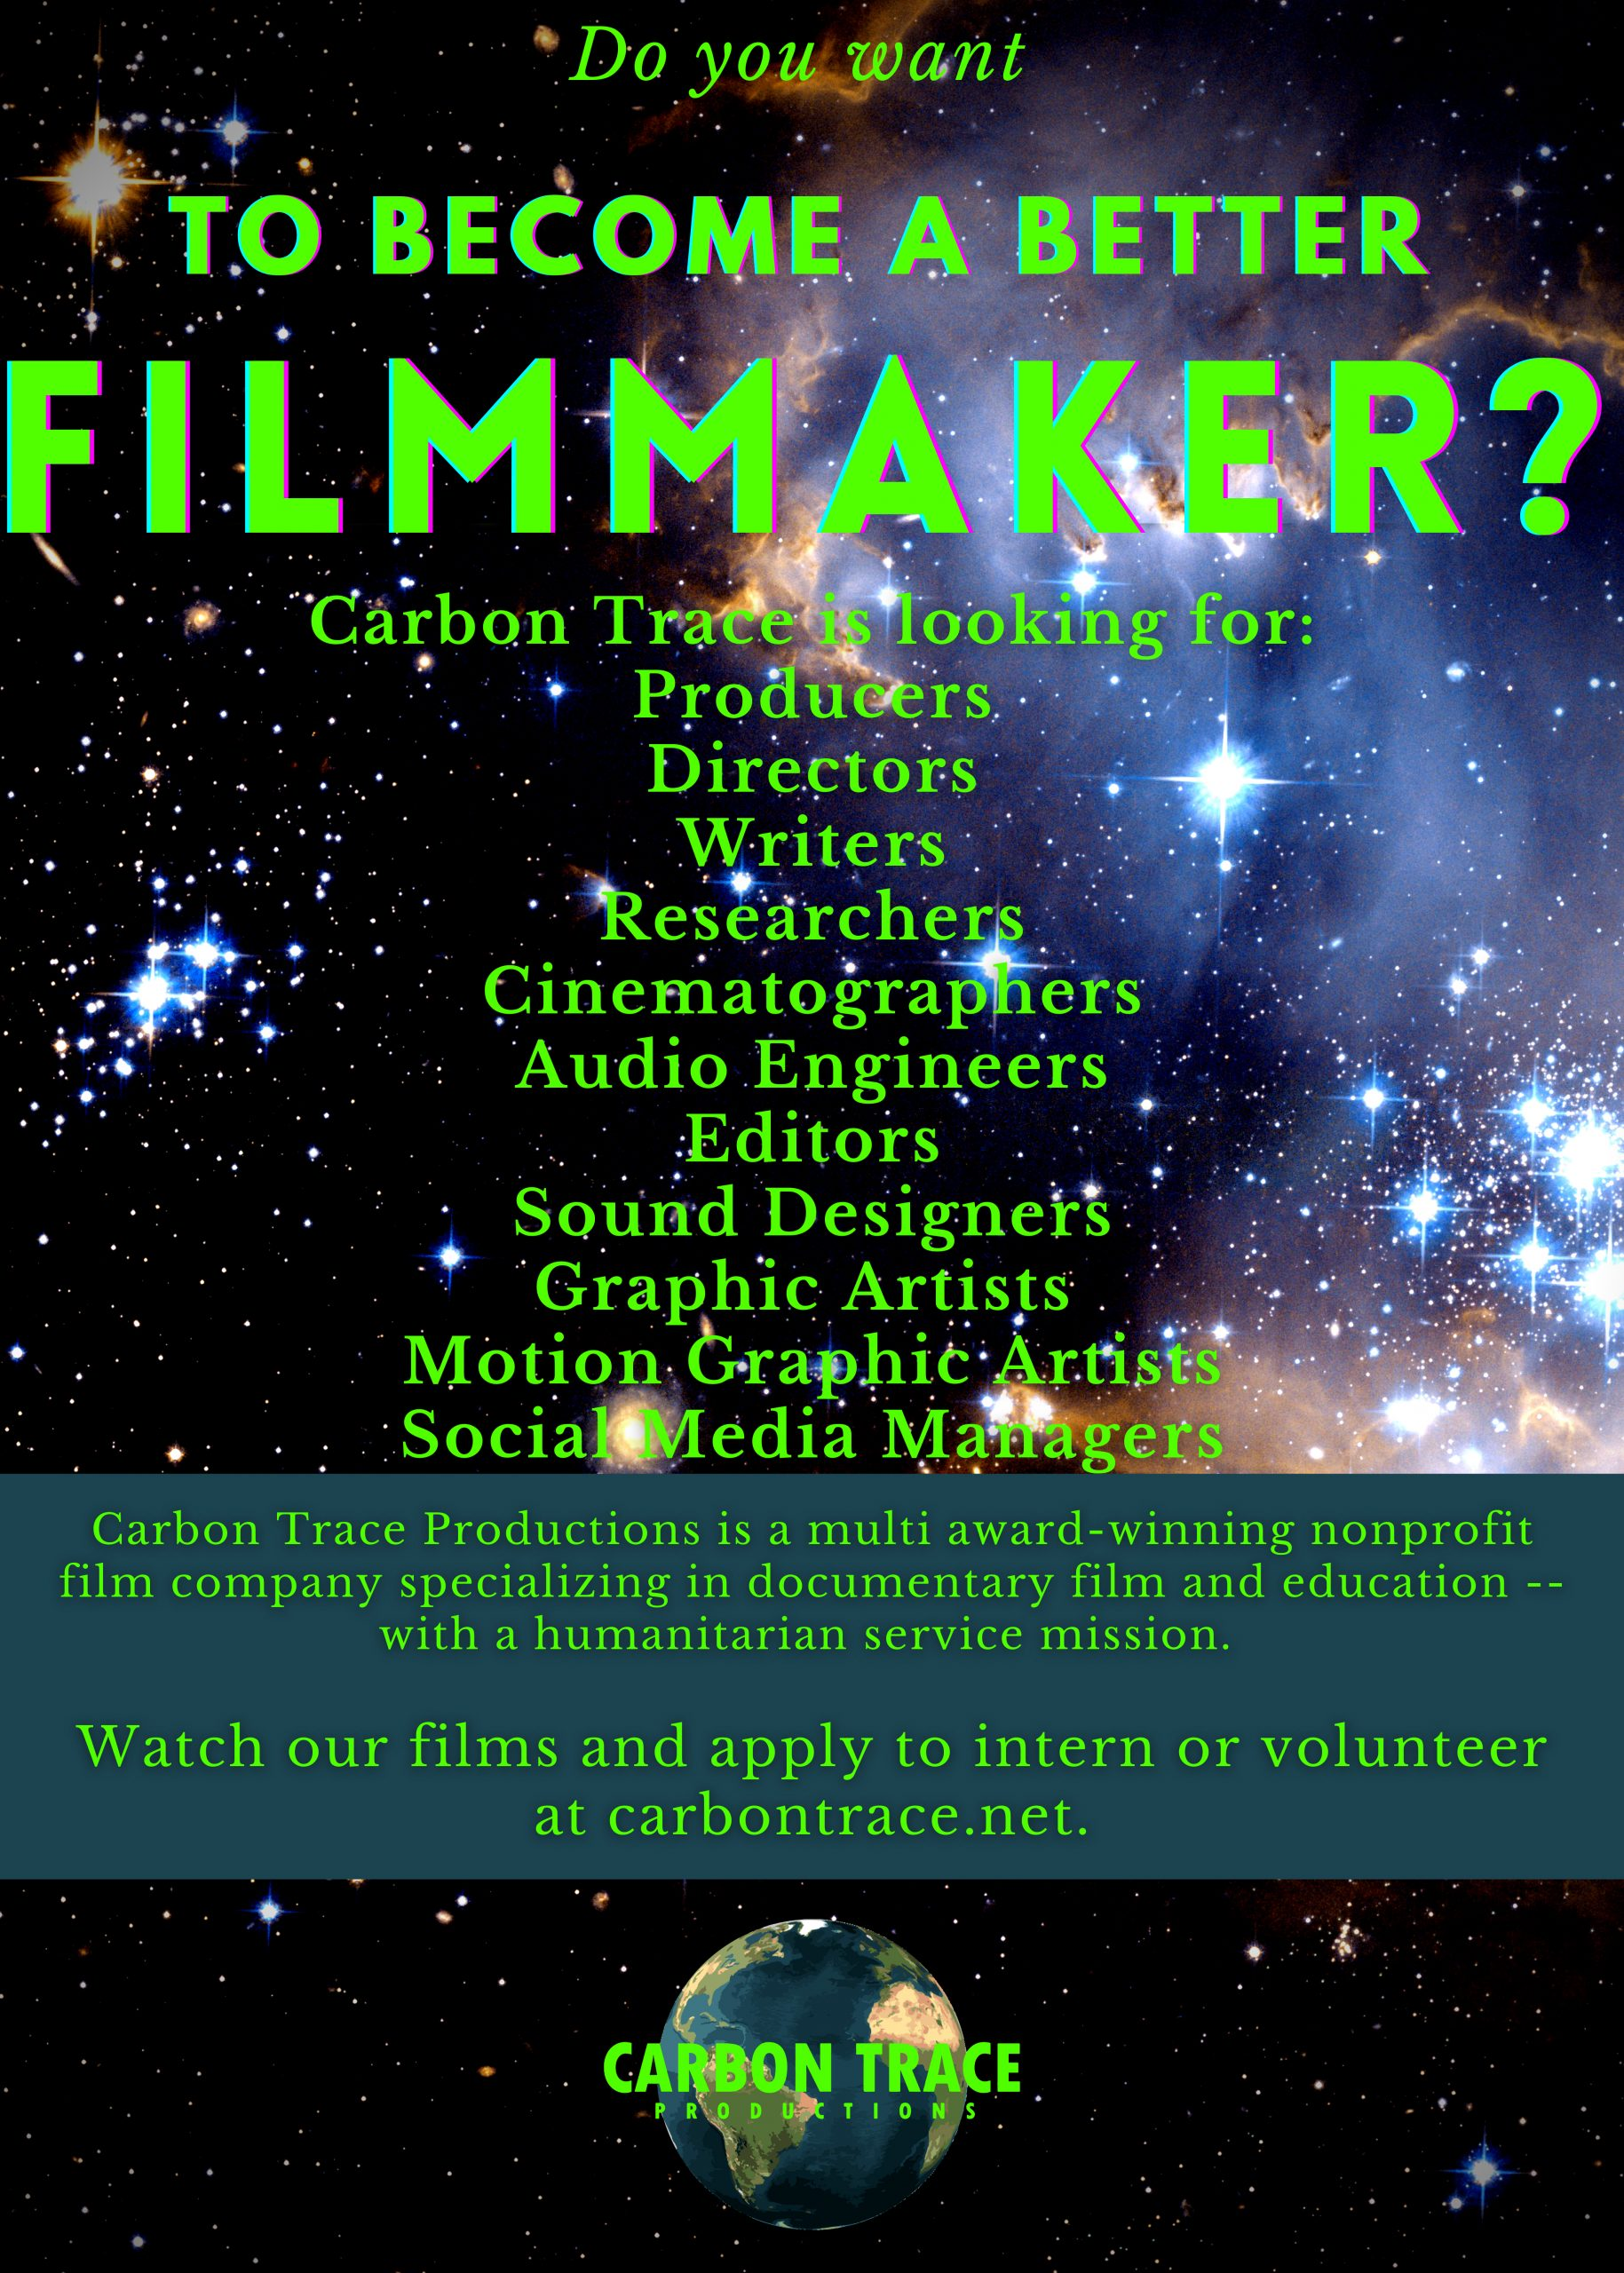 Carbon Trace Looking for Student Filmmakers